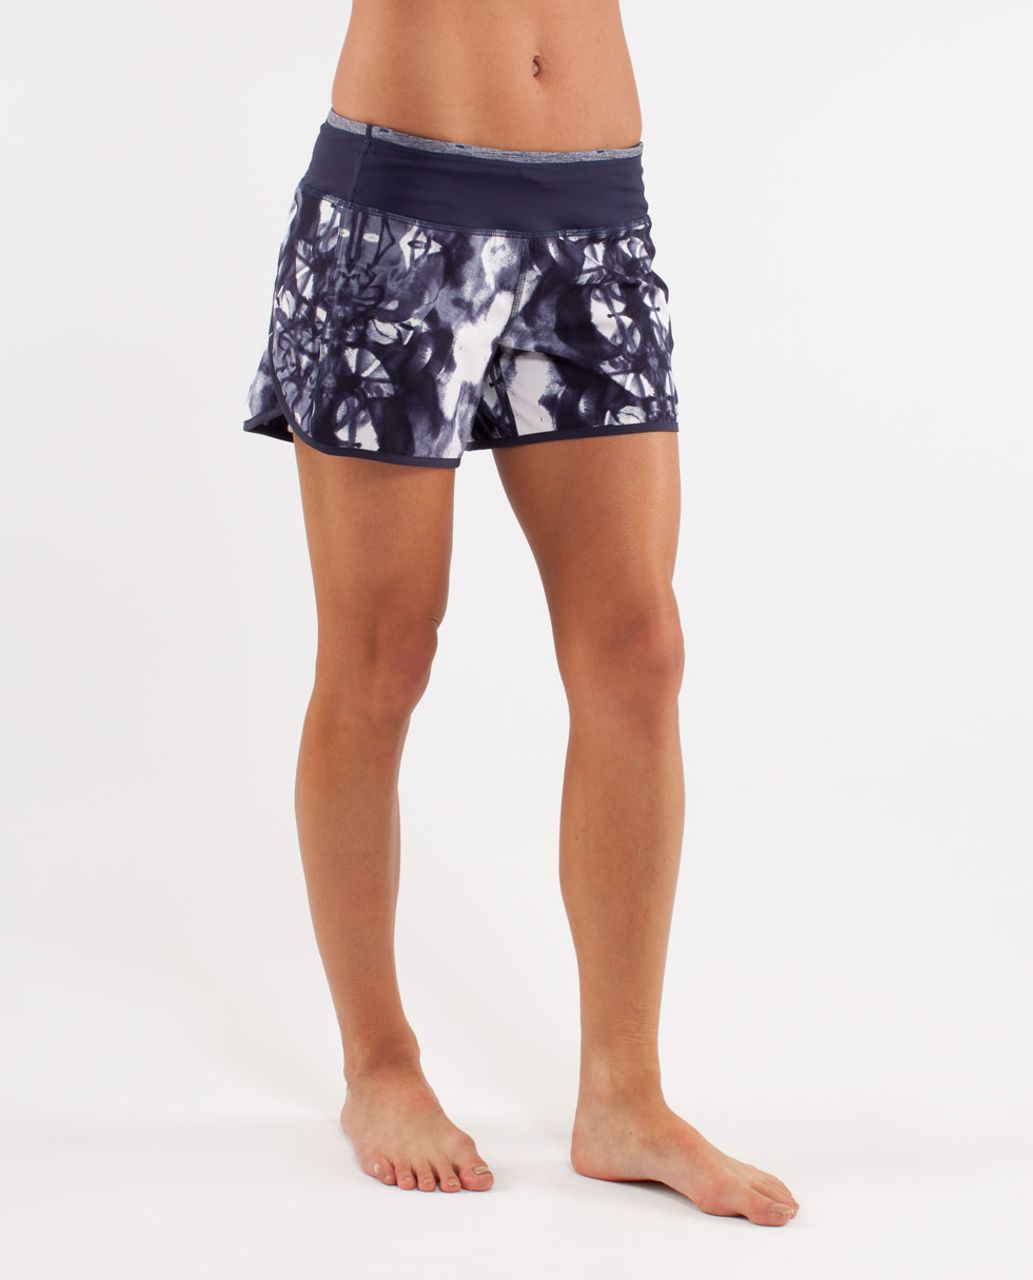 Lululemon Turbo Run Short - Ink Blot White Deep Indigo /  Deep Indigo